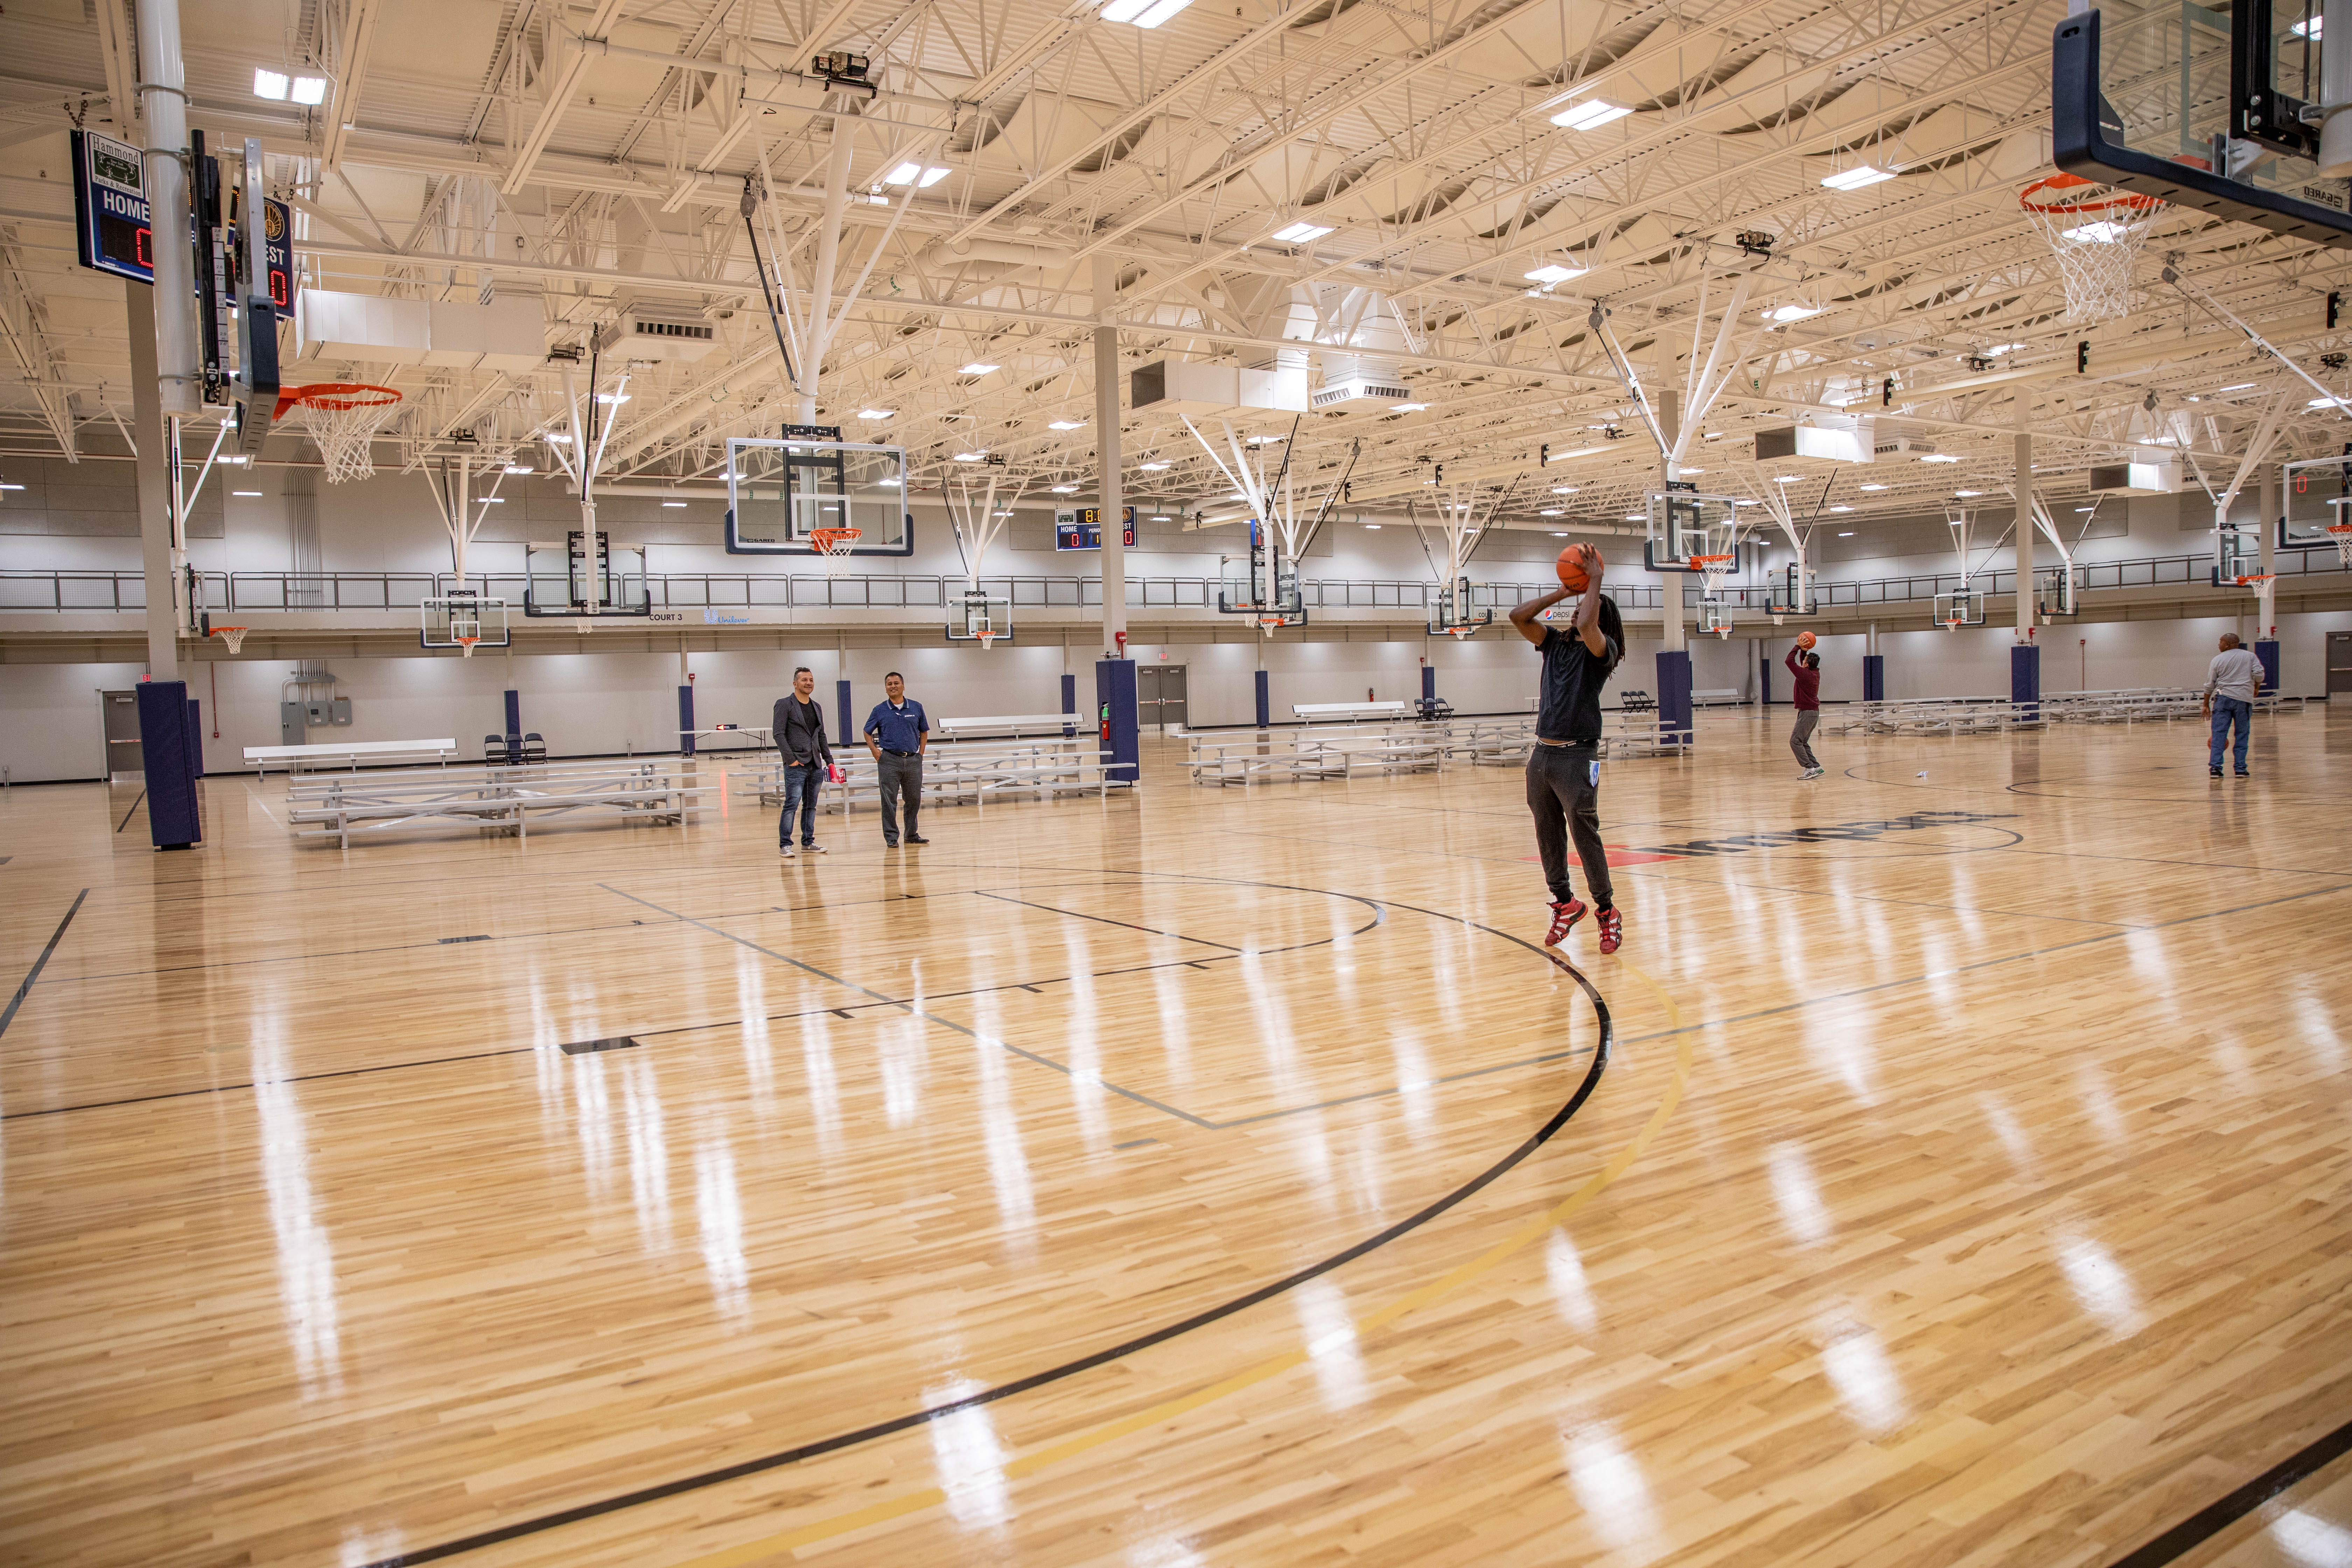 6 Basketball Courts With Practice Cross Court Rims 10